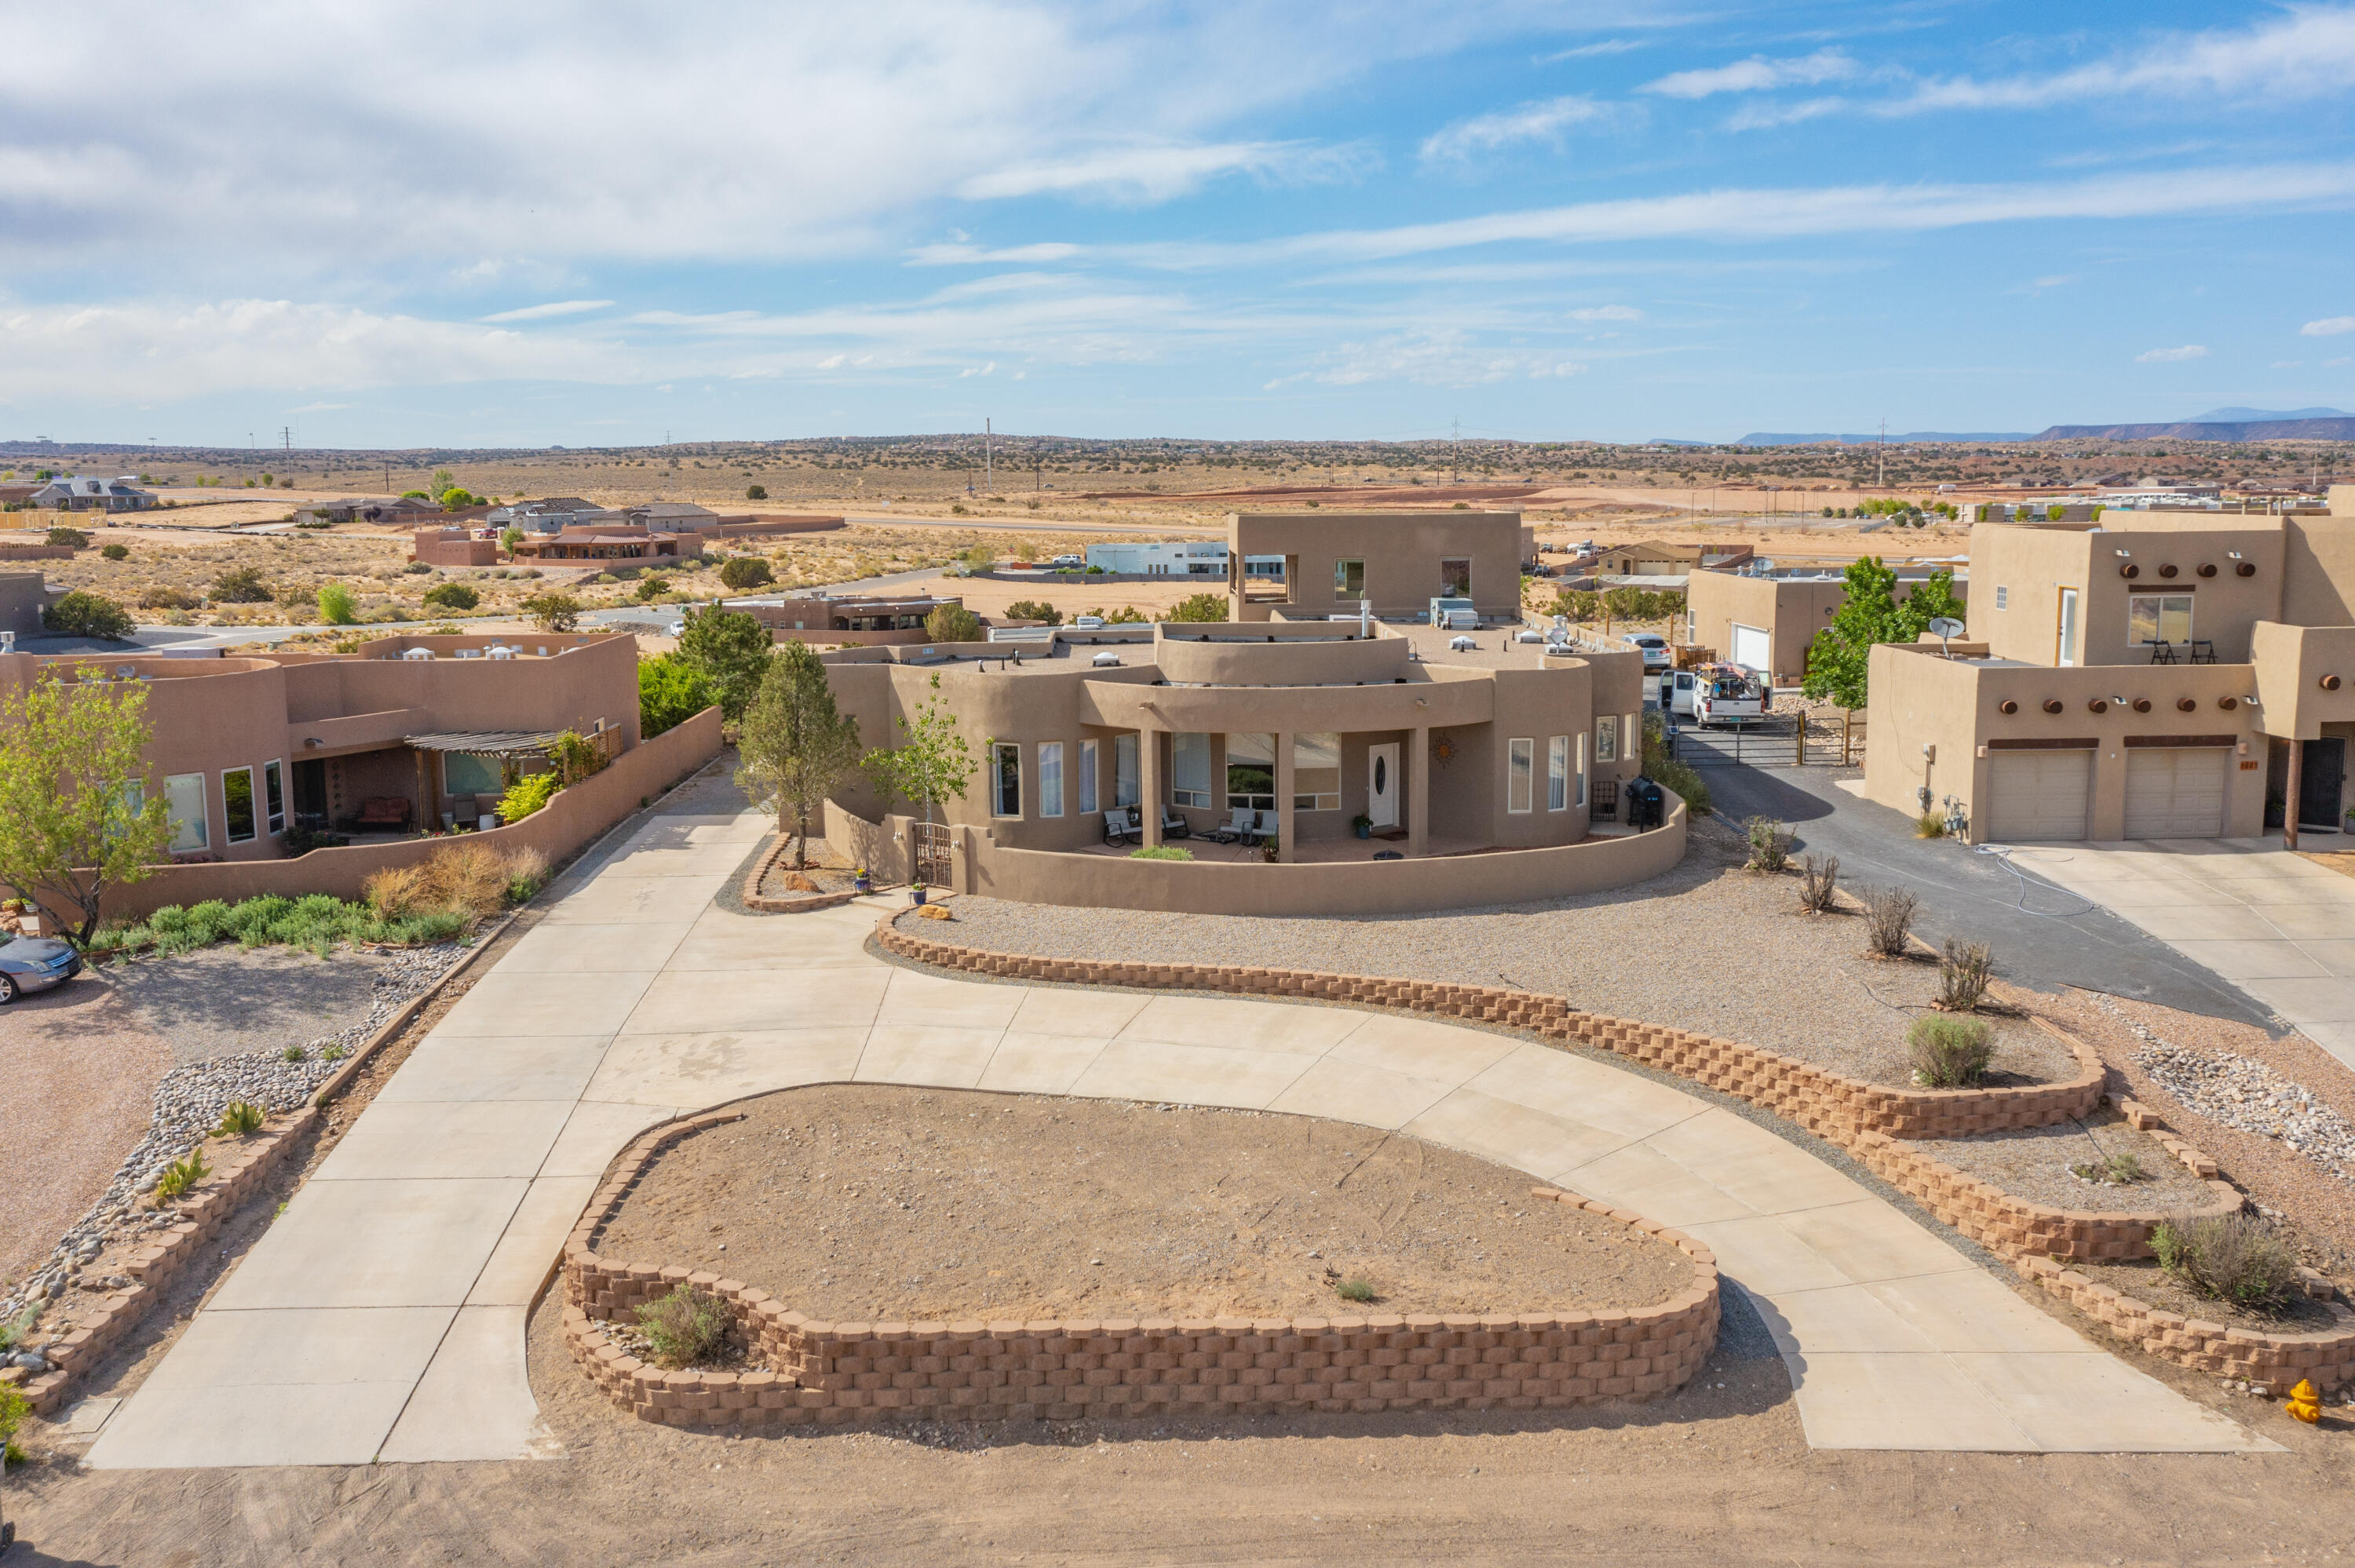 Modern New Mexican Style Home on 1 Acre THIS IS THE PROPERTY that you have been waiting for! 5 Bedrooms, 3 Bath Awesome 4 Car Garage, 2 of which is heated,   Get it ready to be your workshop...You have to see the views!  Look No Further - Schedule your private viewing today!